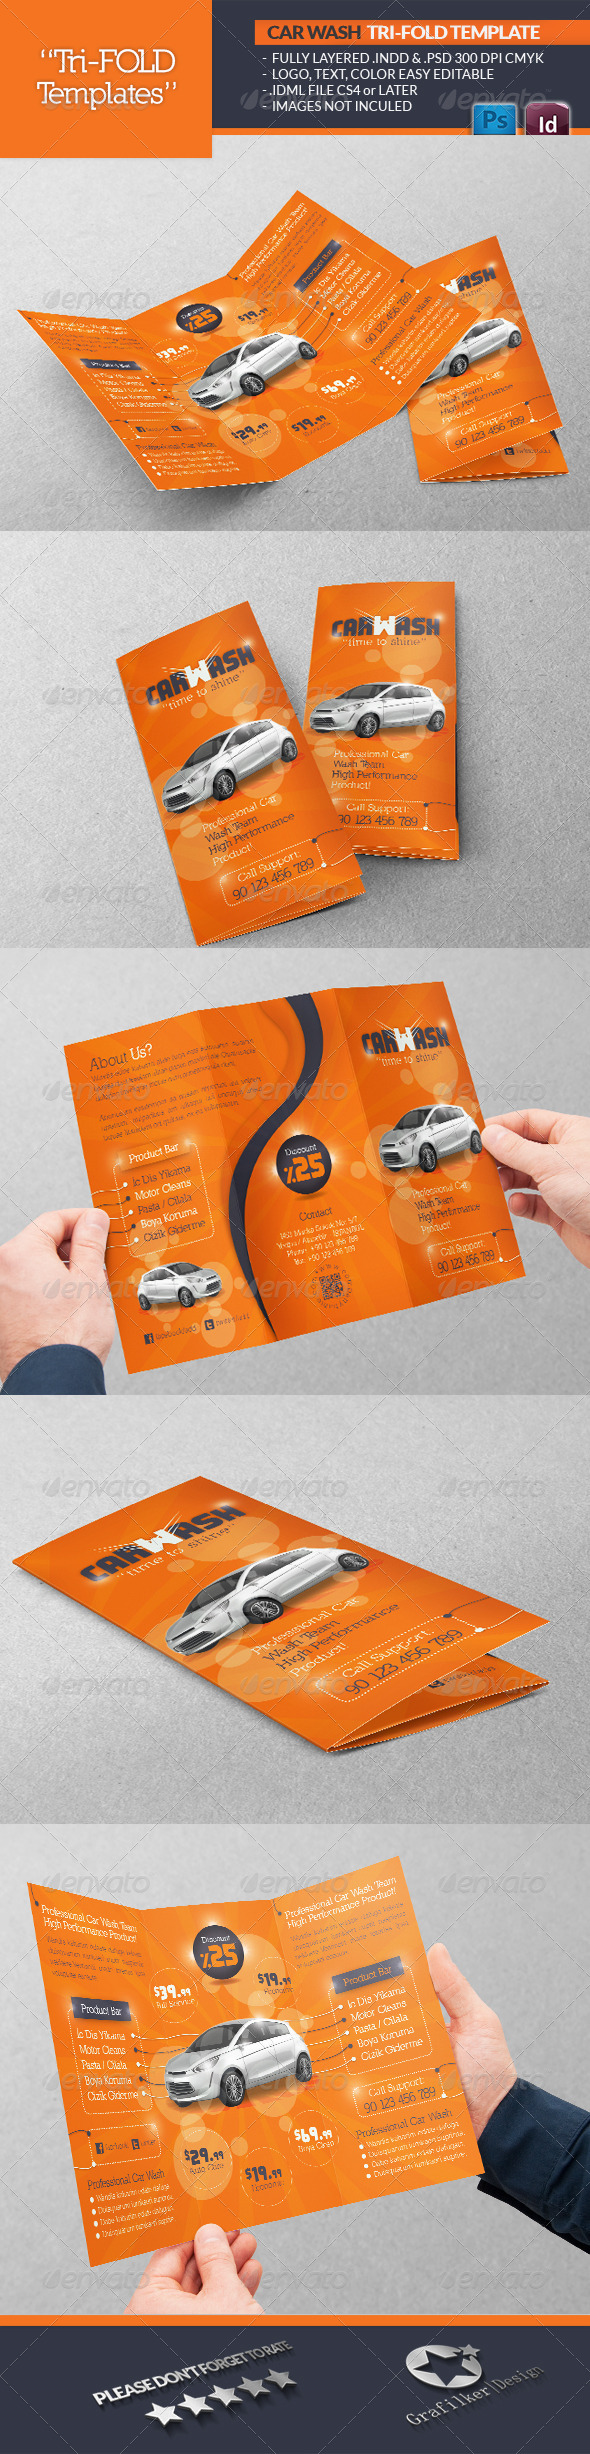 GraphicRiver Car Wash Tri-Fold Template 4651565